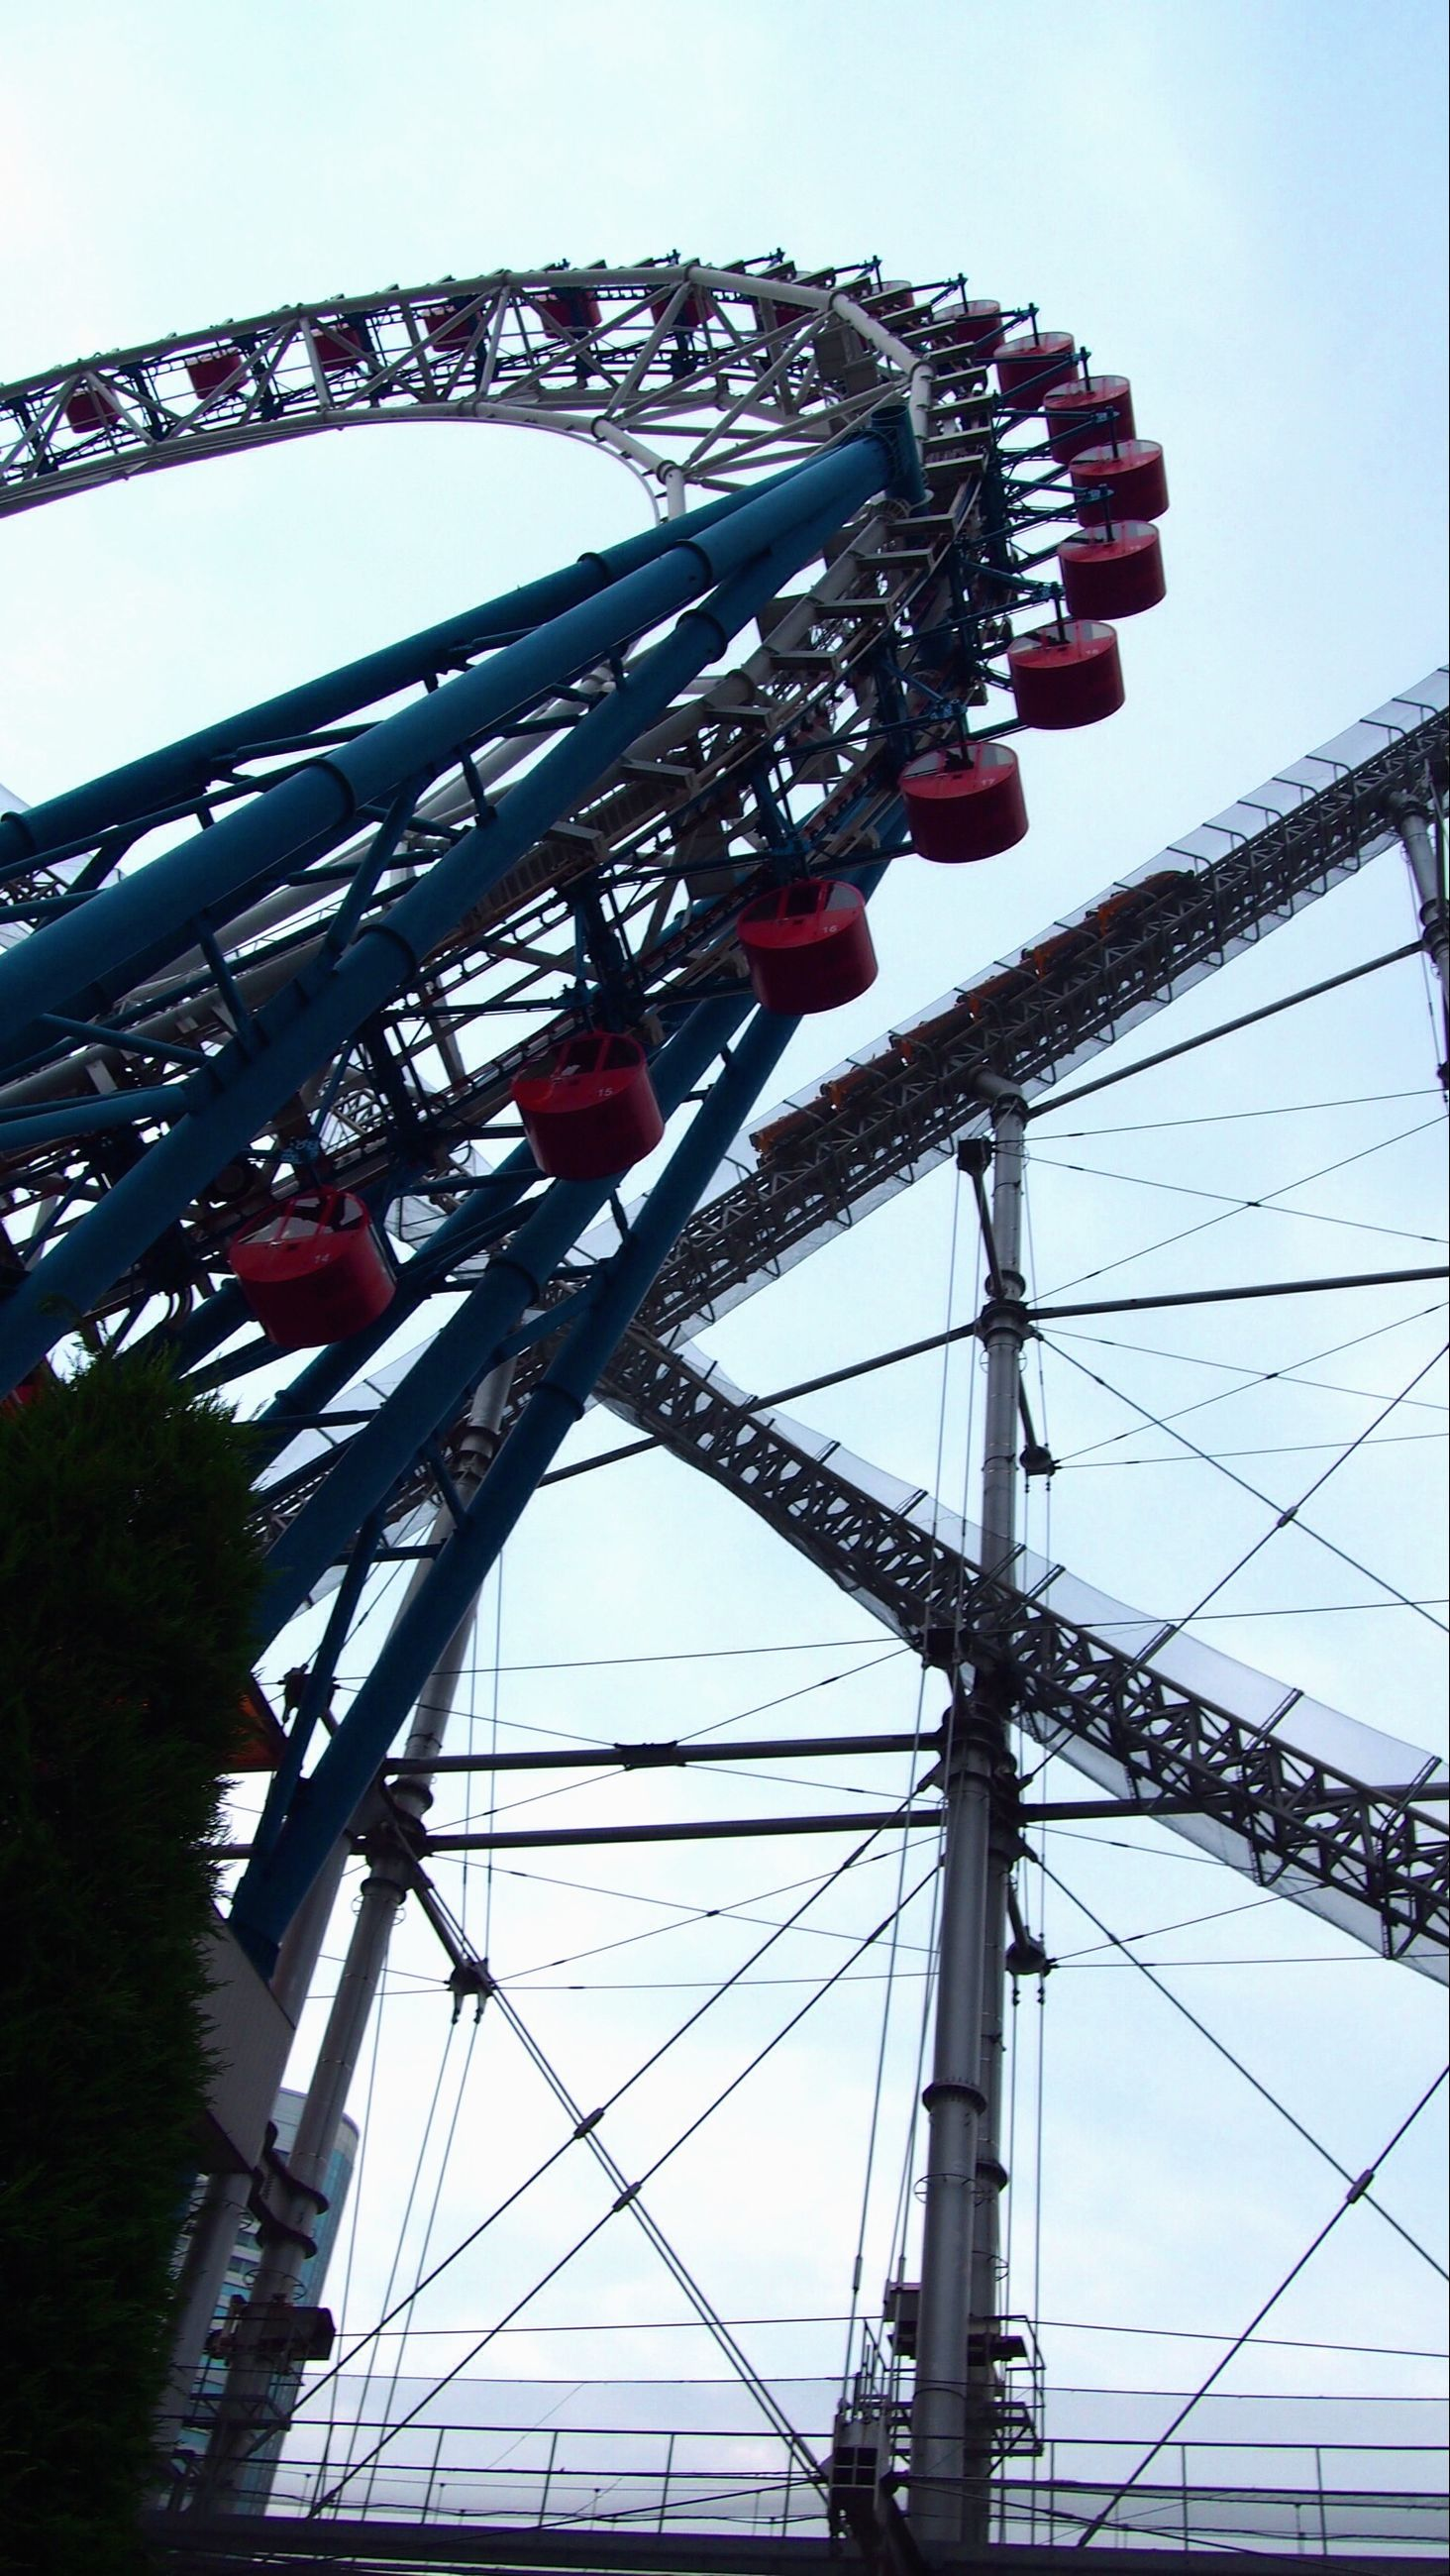 low angle view, sky, clear sky, connection, amusement park, amusement park ride, metal, day, cable, arts culture and entertainment, outdoors, no people, electricity pylon, built structure, ferris wheel, power line, metallic, engineering, blue, nature